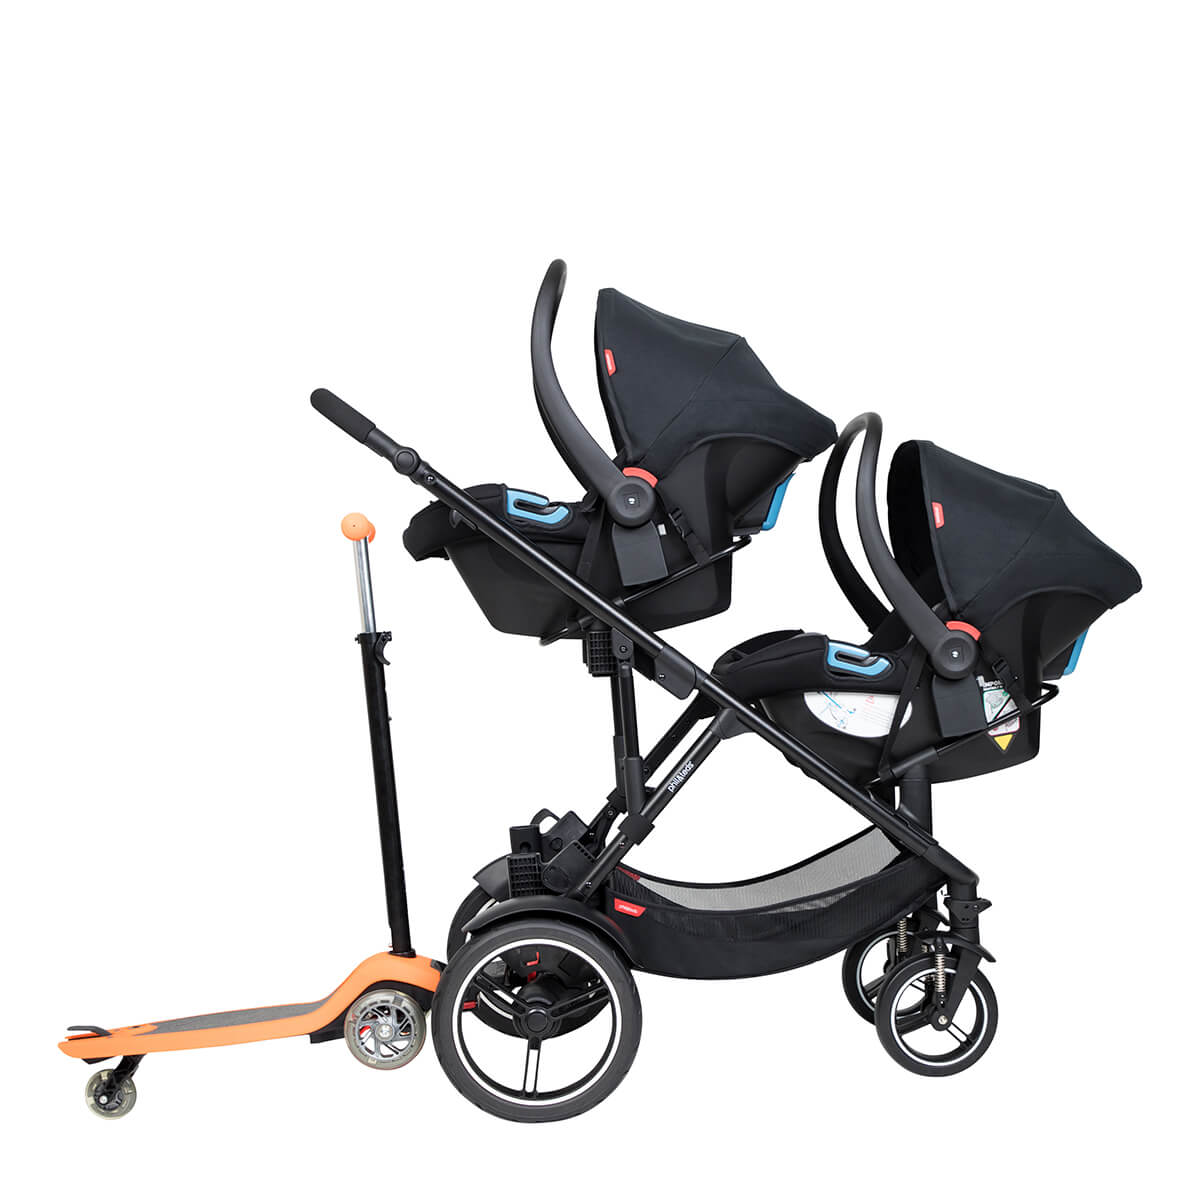 https://cdn.accentuate.io/4384006013025/19794908643498/philteds-voyager-buggy-with-double-travel-systems-and-freerider-stroller-board-in-the-rear-v1626147760370.jpg?1200x1200